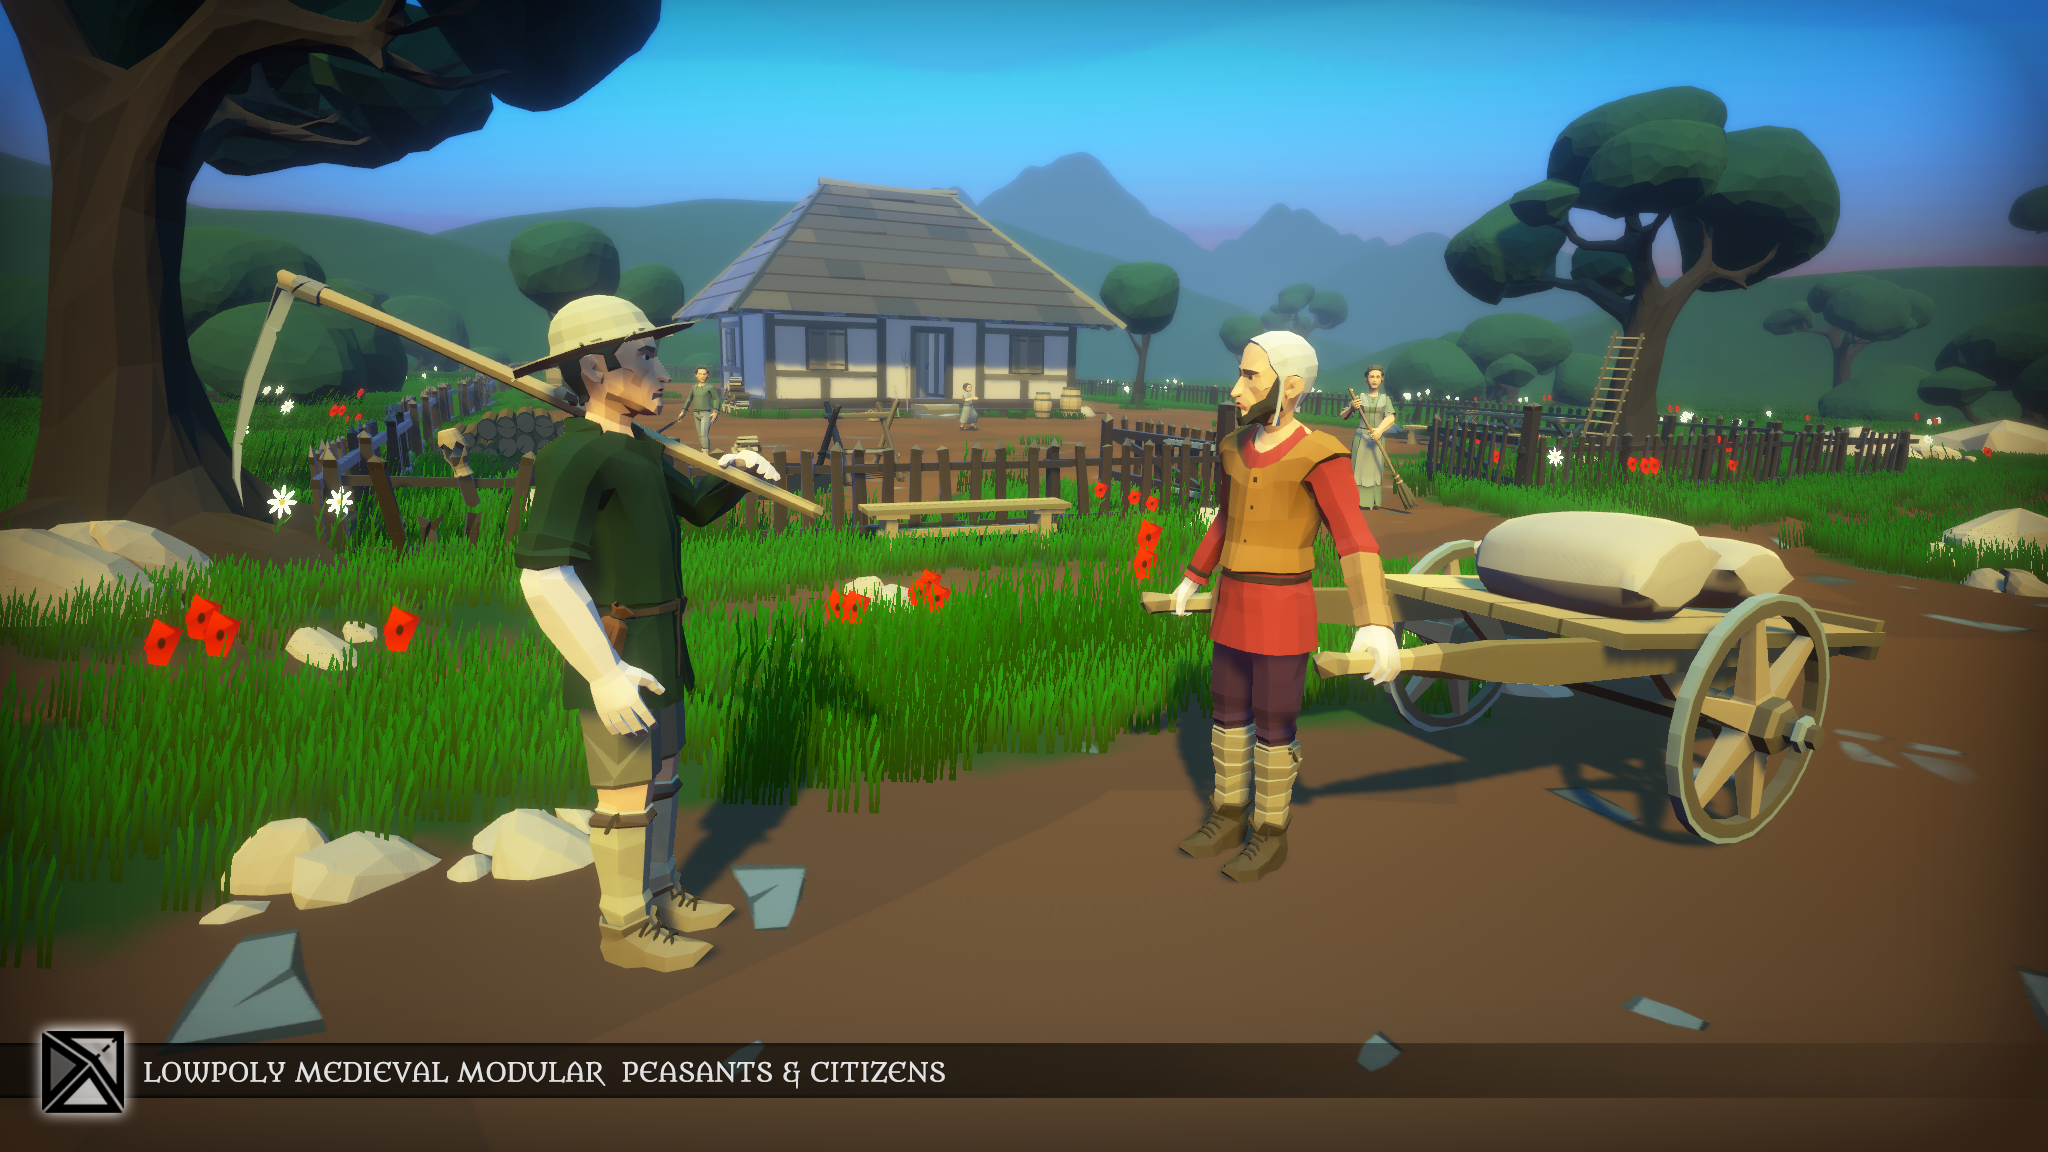 PT_Medieval_Lowpoly_Peasants_Citizens_Demo.png